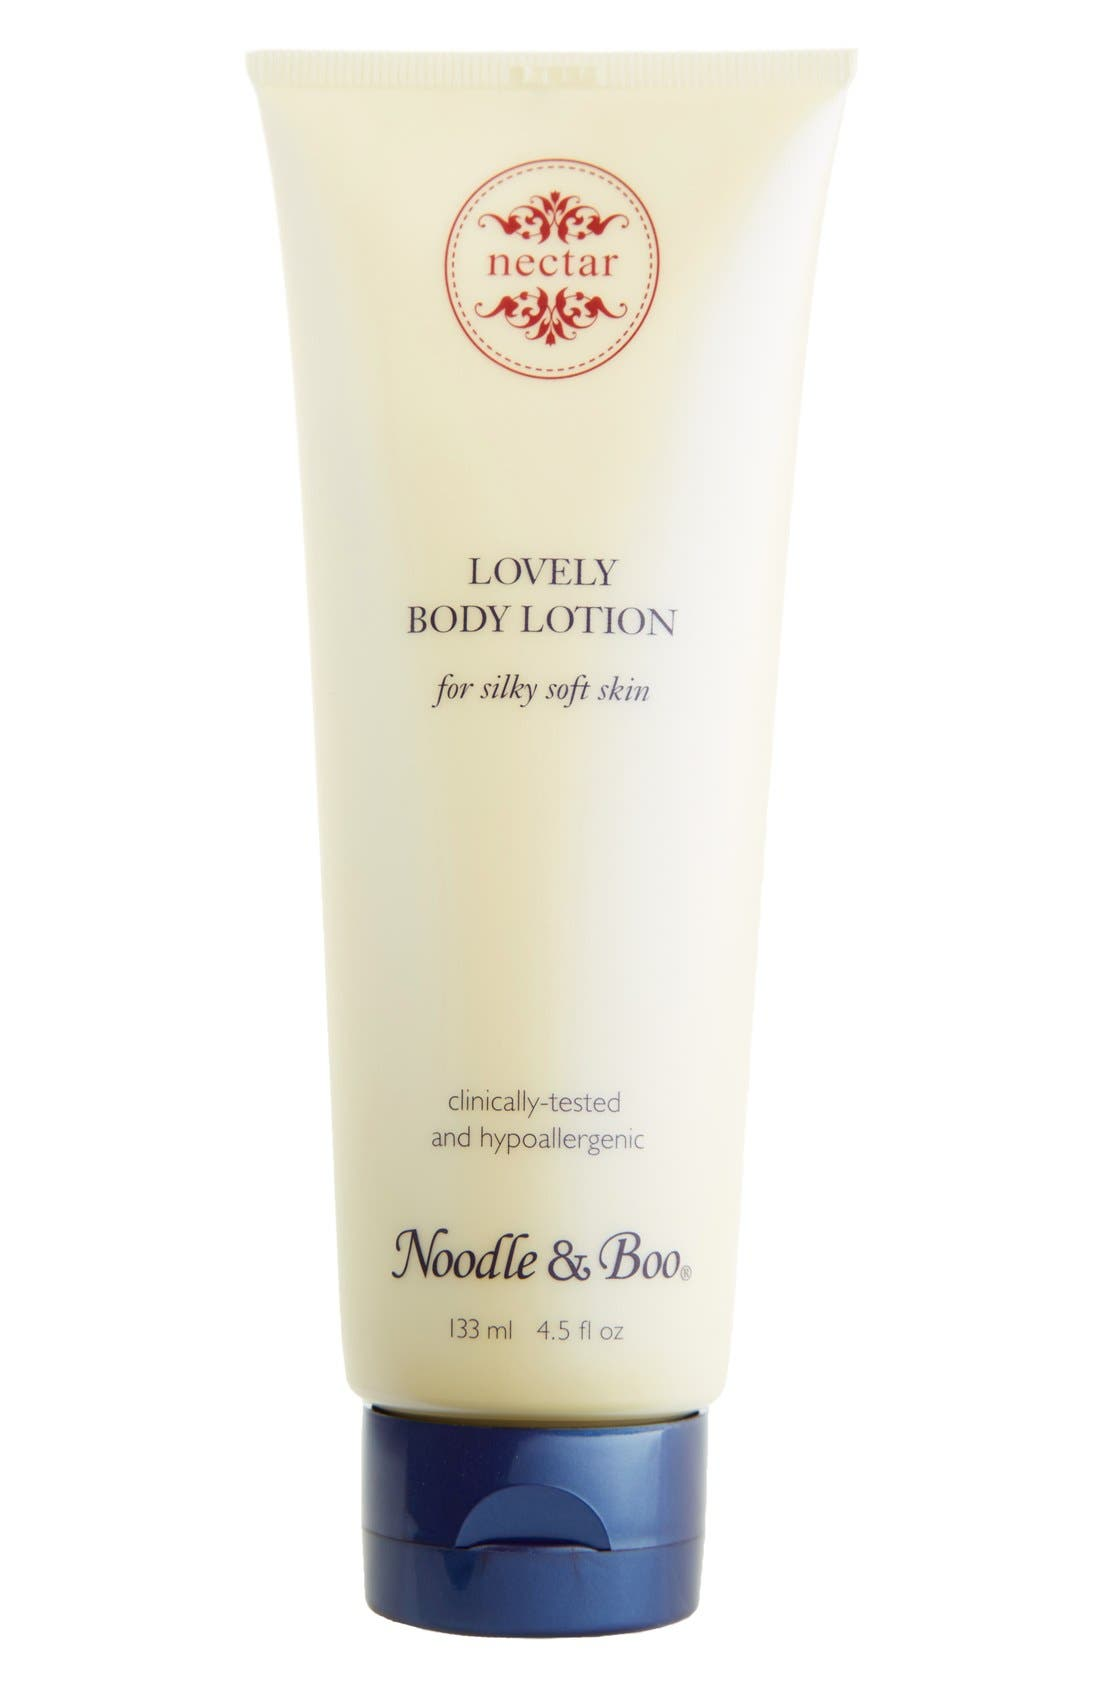 Noodle & Boo 'nectar - Lovely' Body Lotion